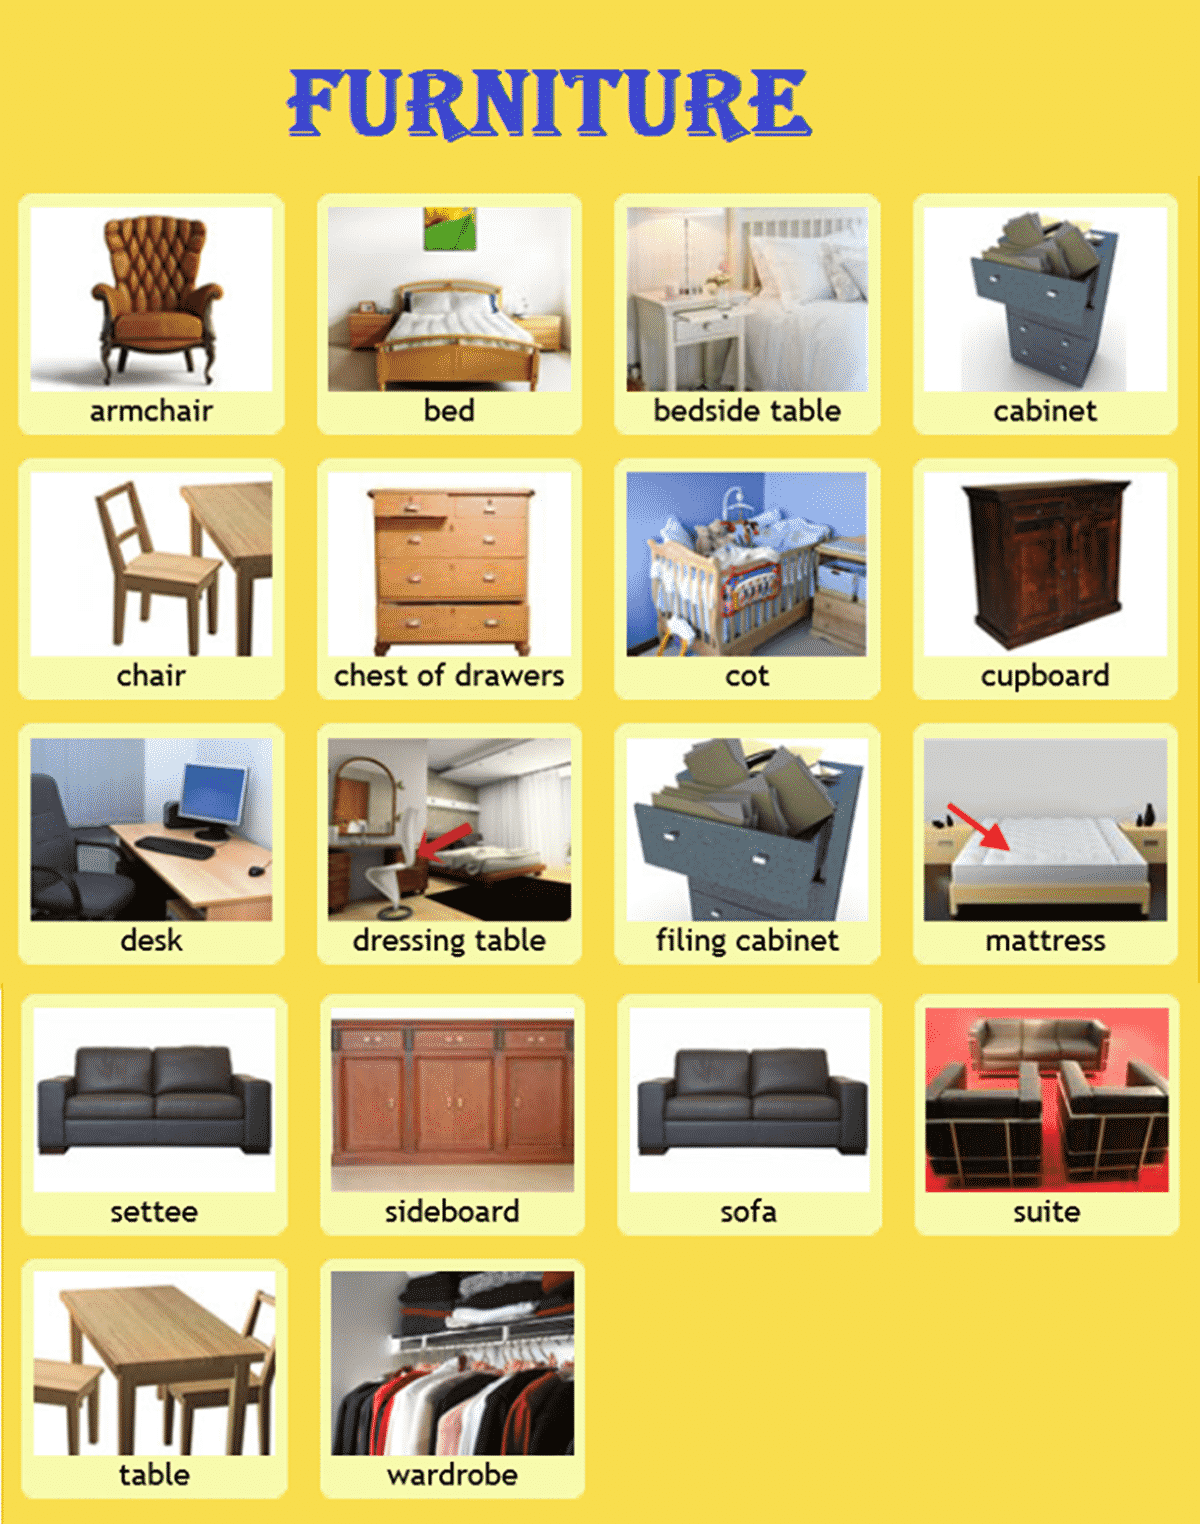 Furniture Vocabulary: 250+ Items Illustrated 5